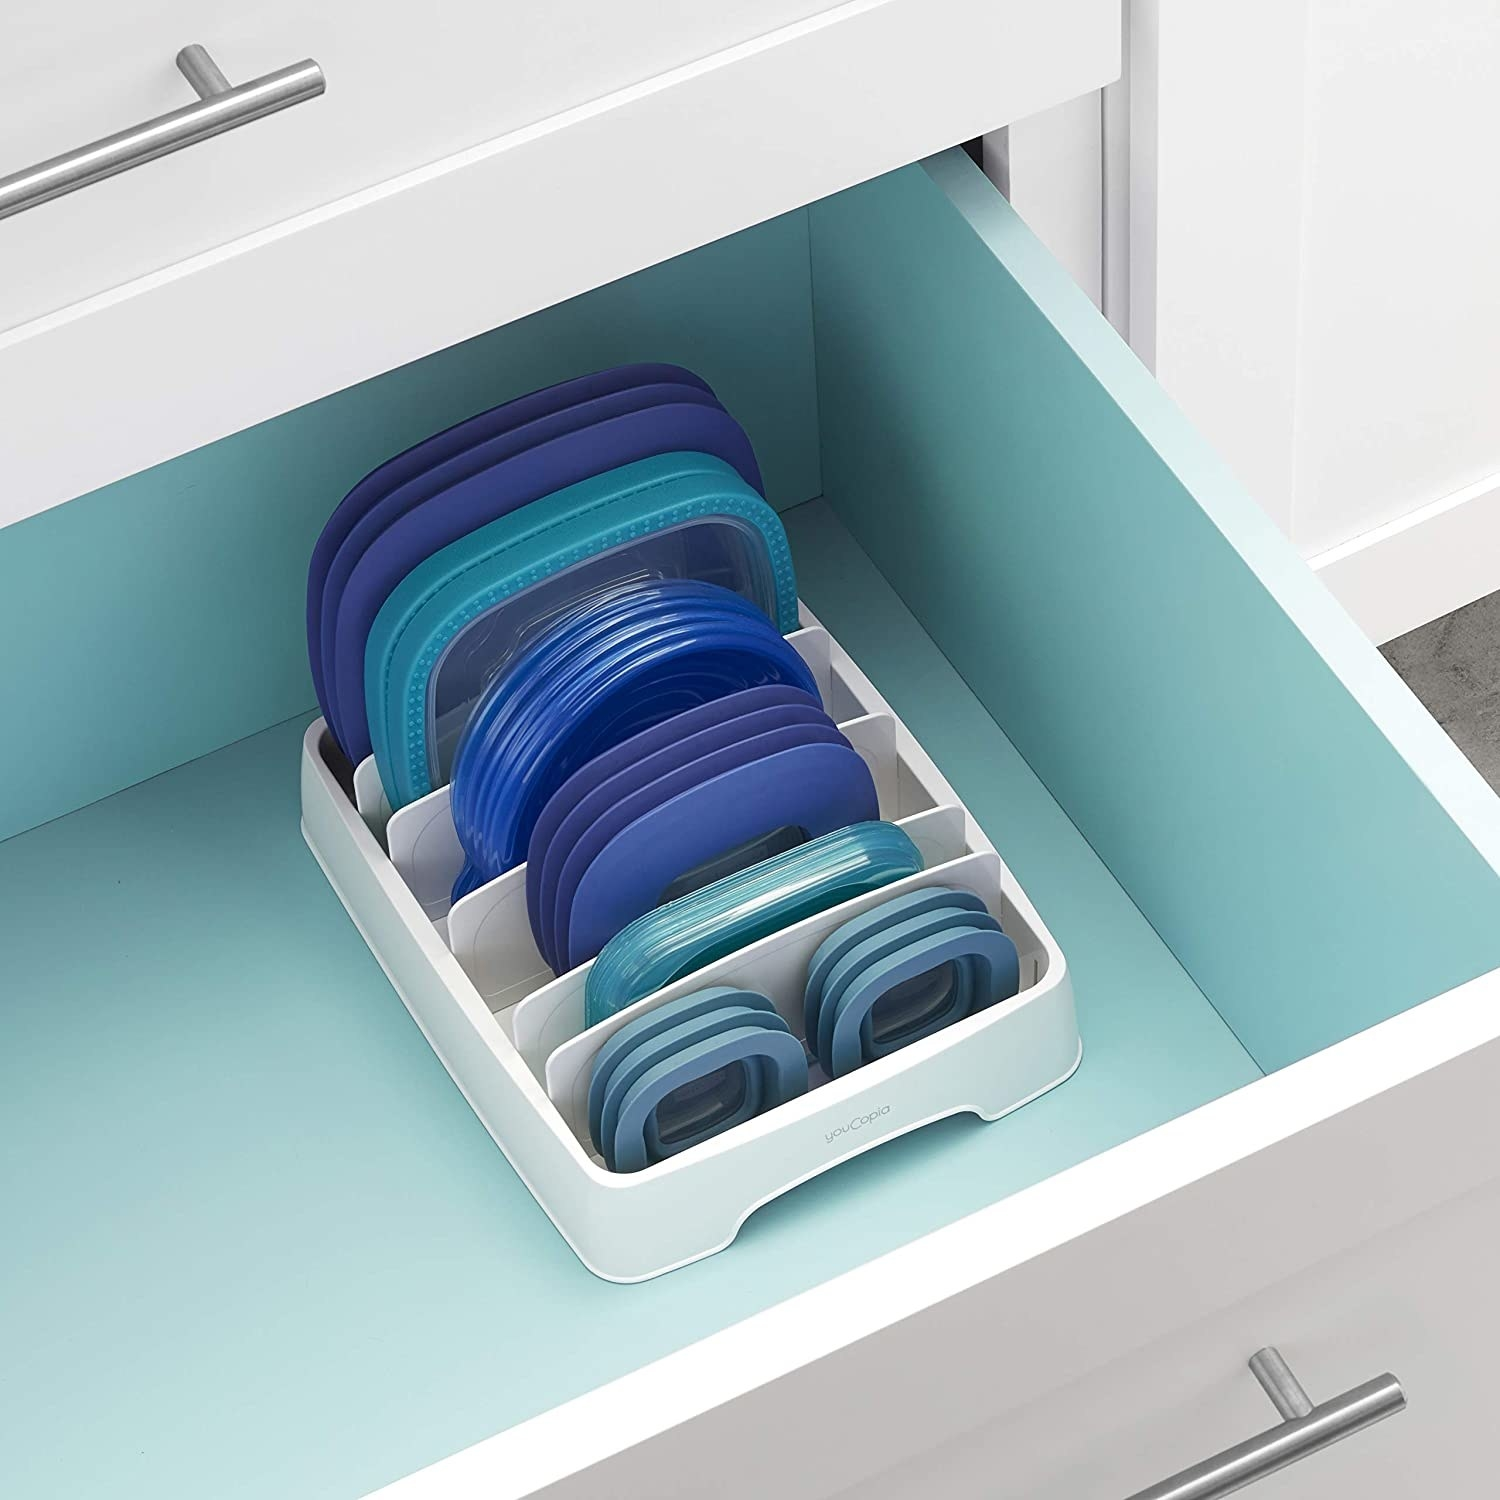 A variety of lids securely stored in the lid organizer